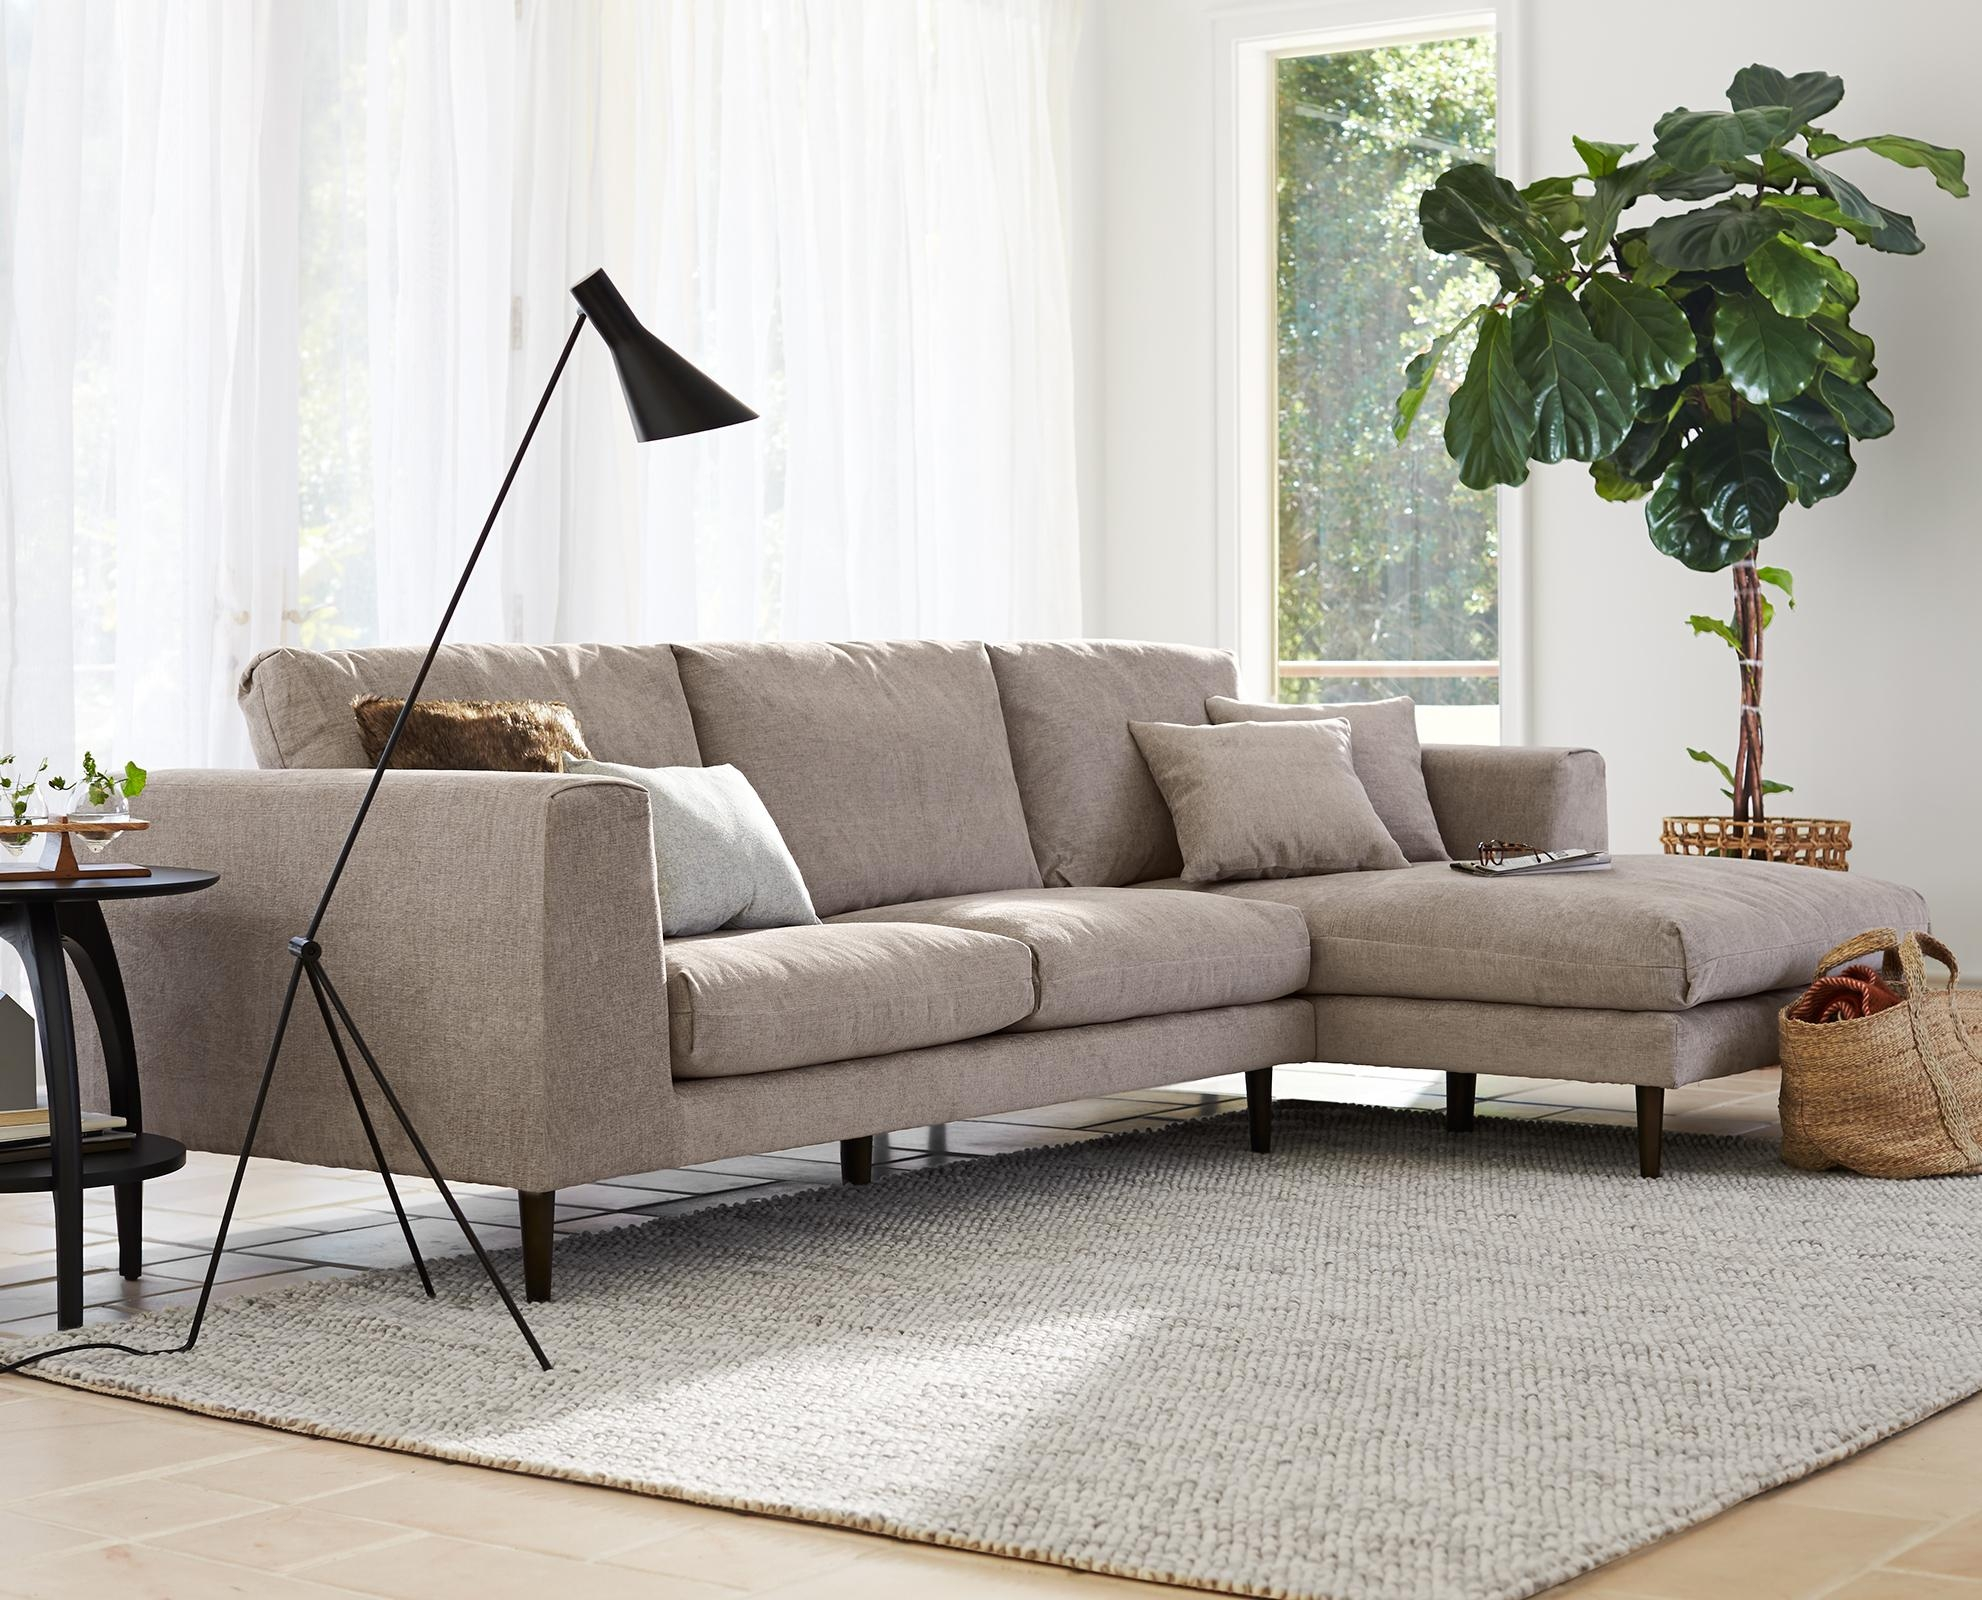 Sofas Center : Charming Oversized Sectional Sofa With Chaise About With Sectional Sofas Portland (Image 14 of 20)